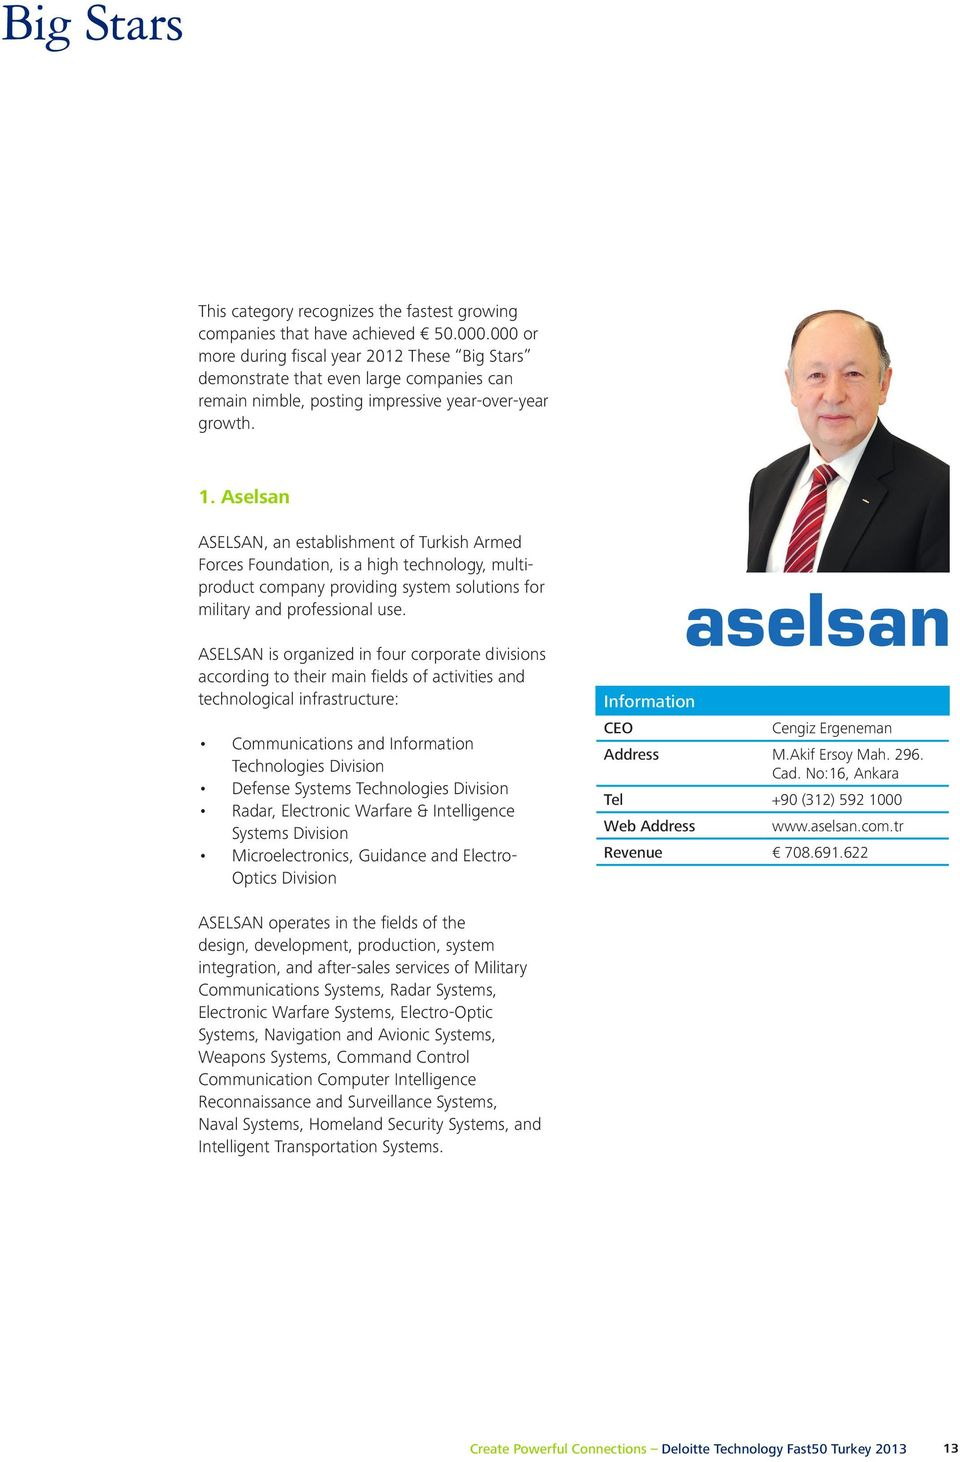 Aselsan ASELSAN, an establishment of Turkish Armed Forces Foundation, is a high technology, multiproduct company providing system solutions for military and professional use.